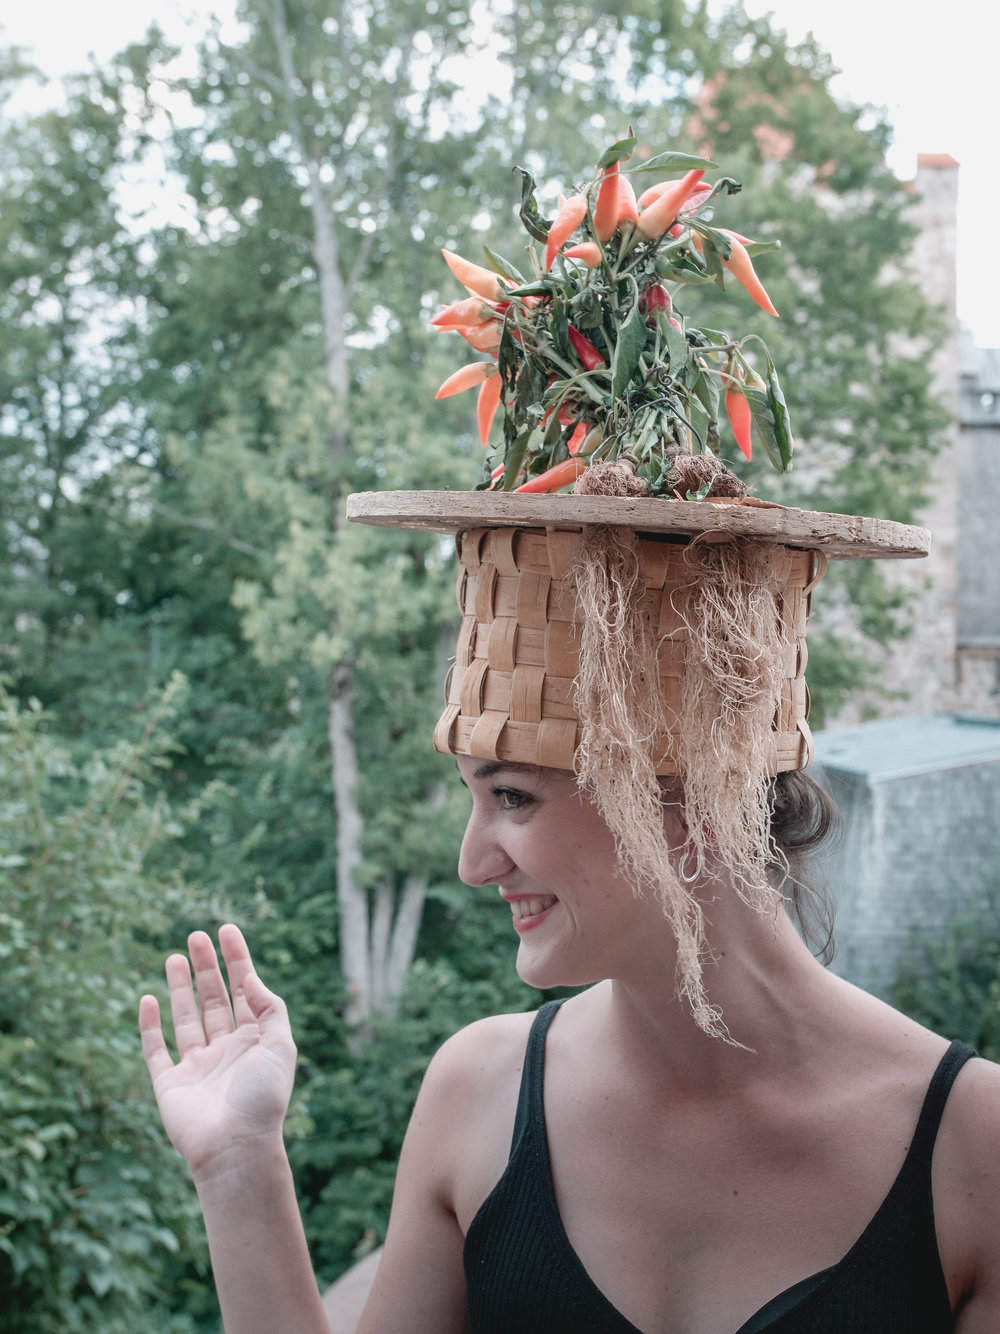 a hat to grow peppers or tomatoes by Laura Pazo    photo by Ivars Burtnieks